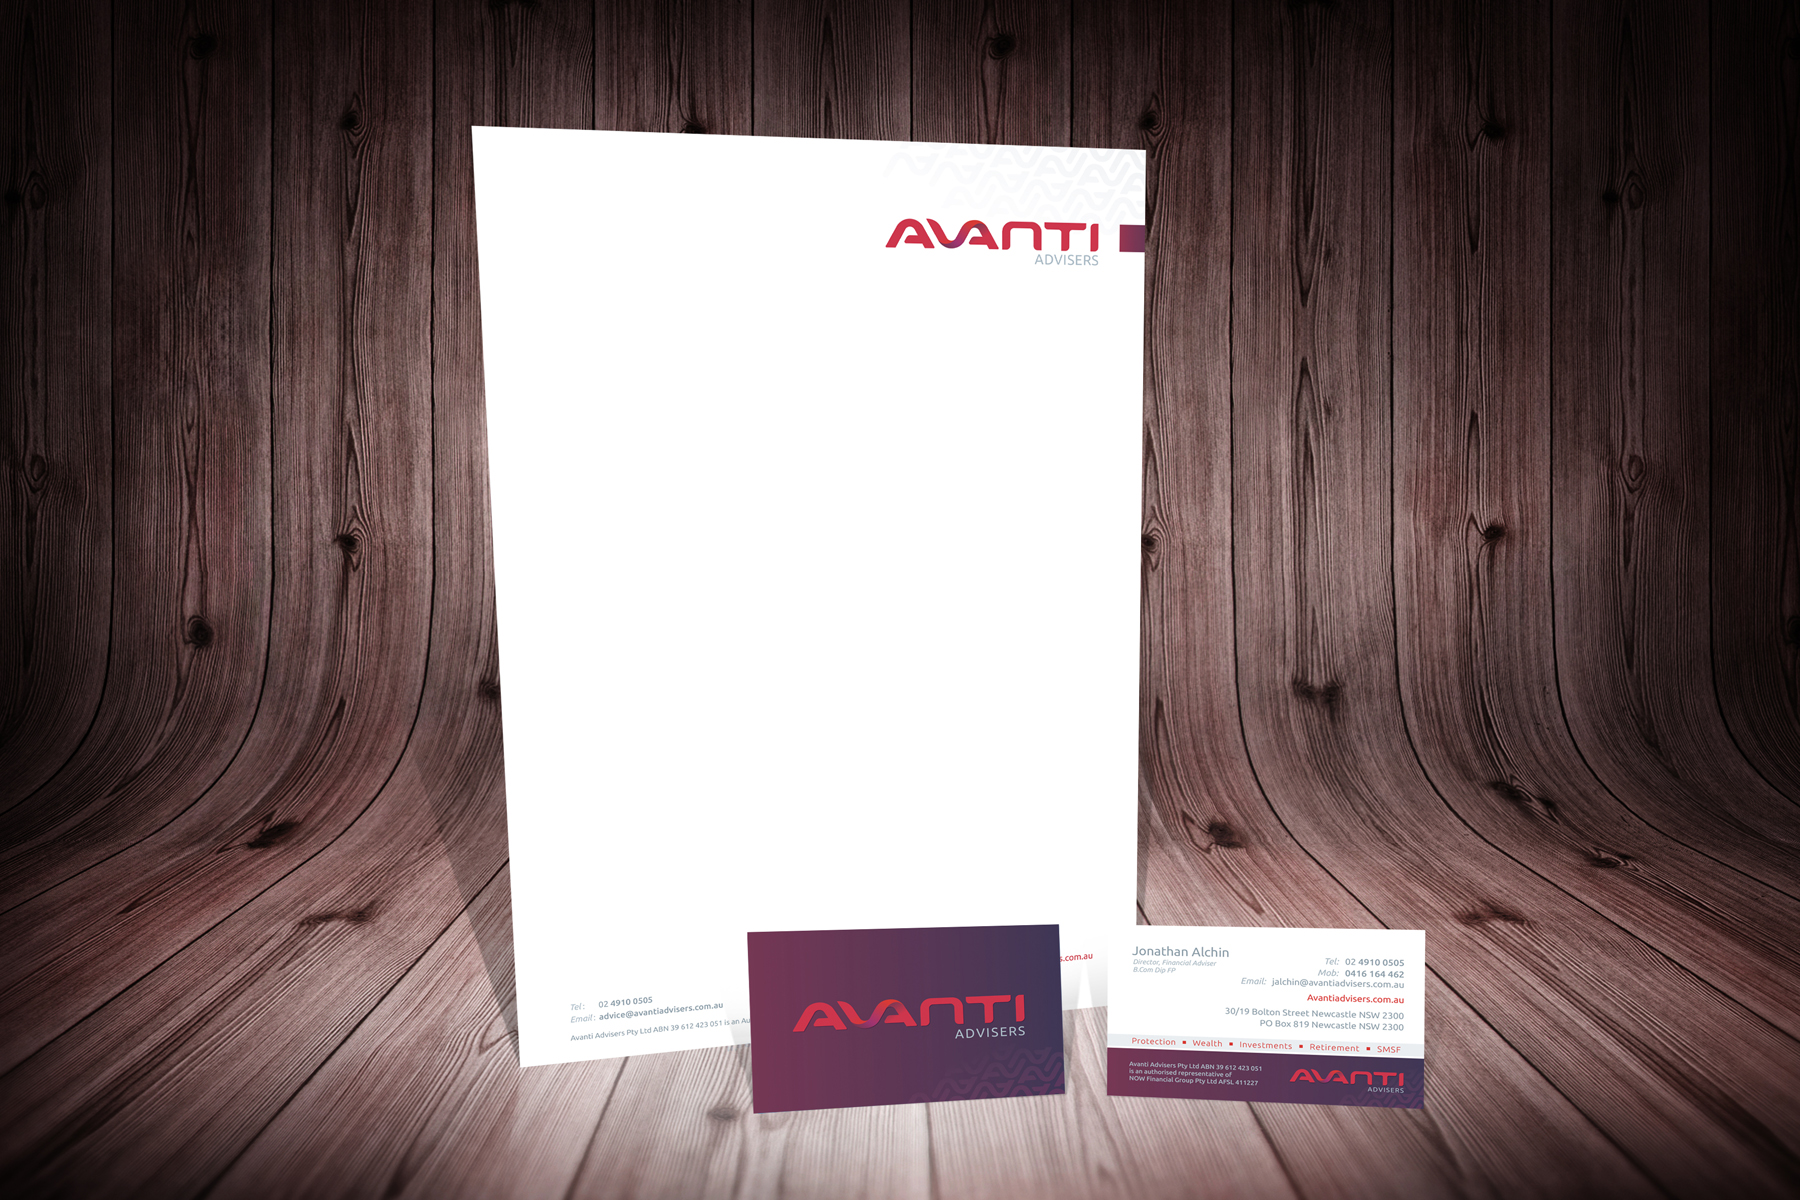 AVANTI Advisers Financial Services Stationery Wall and Floor